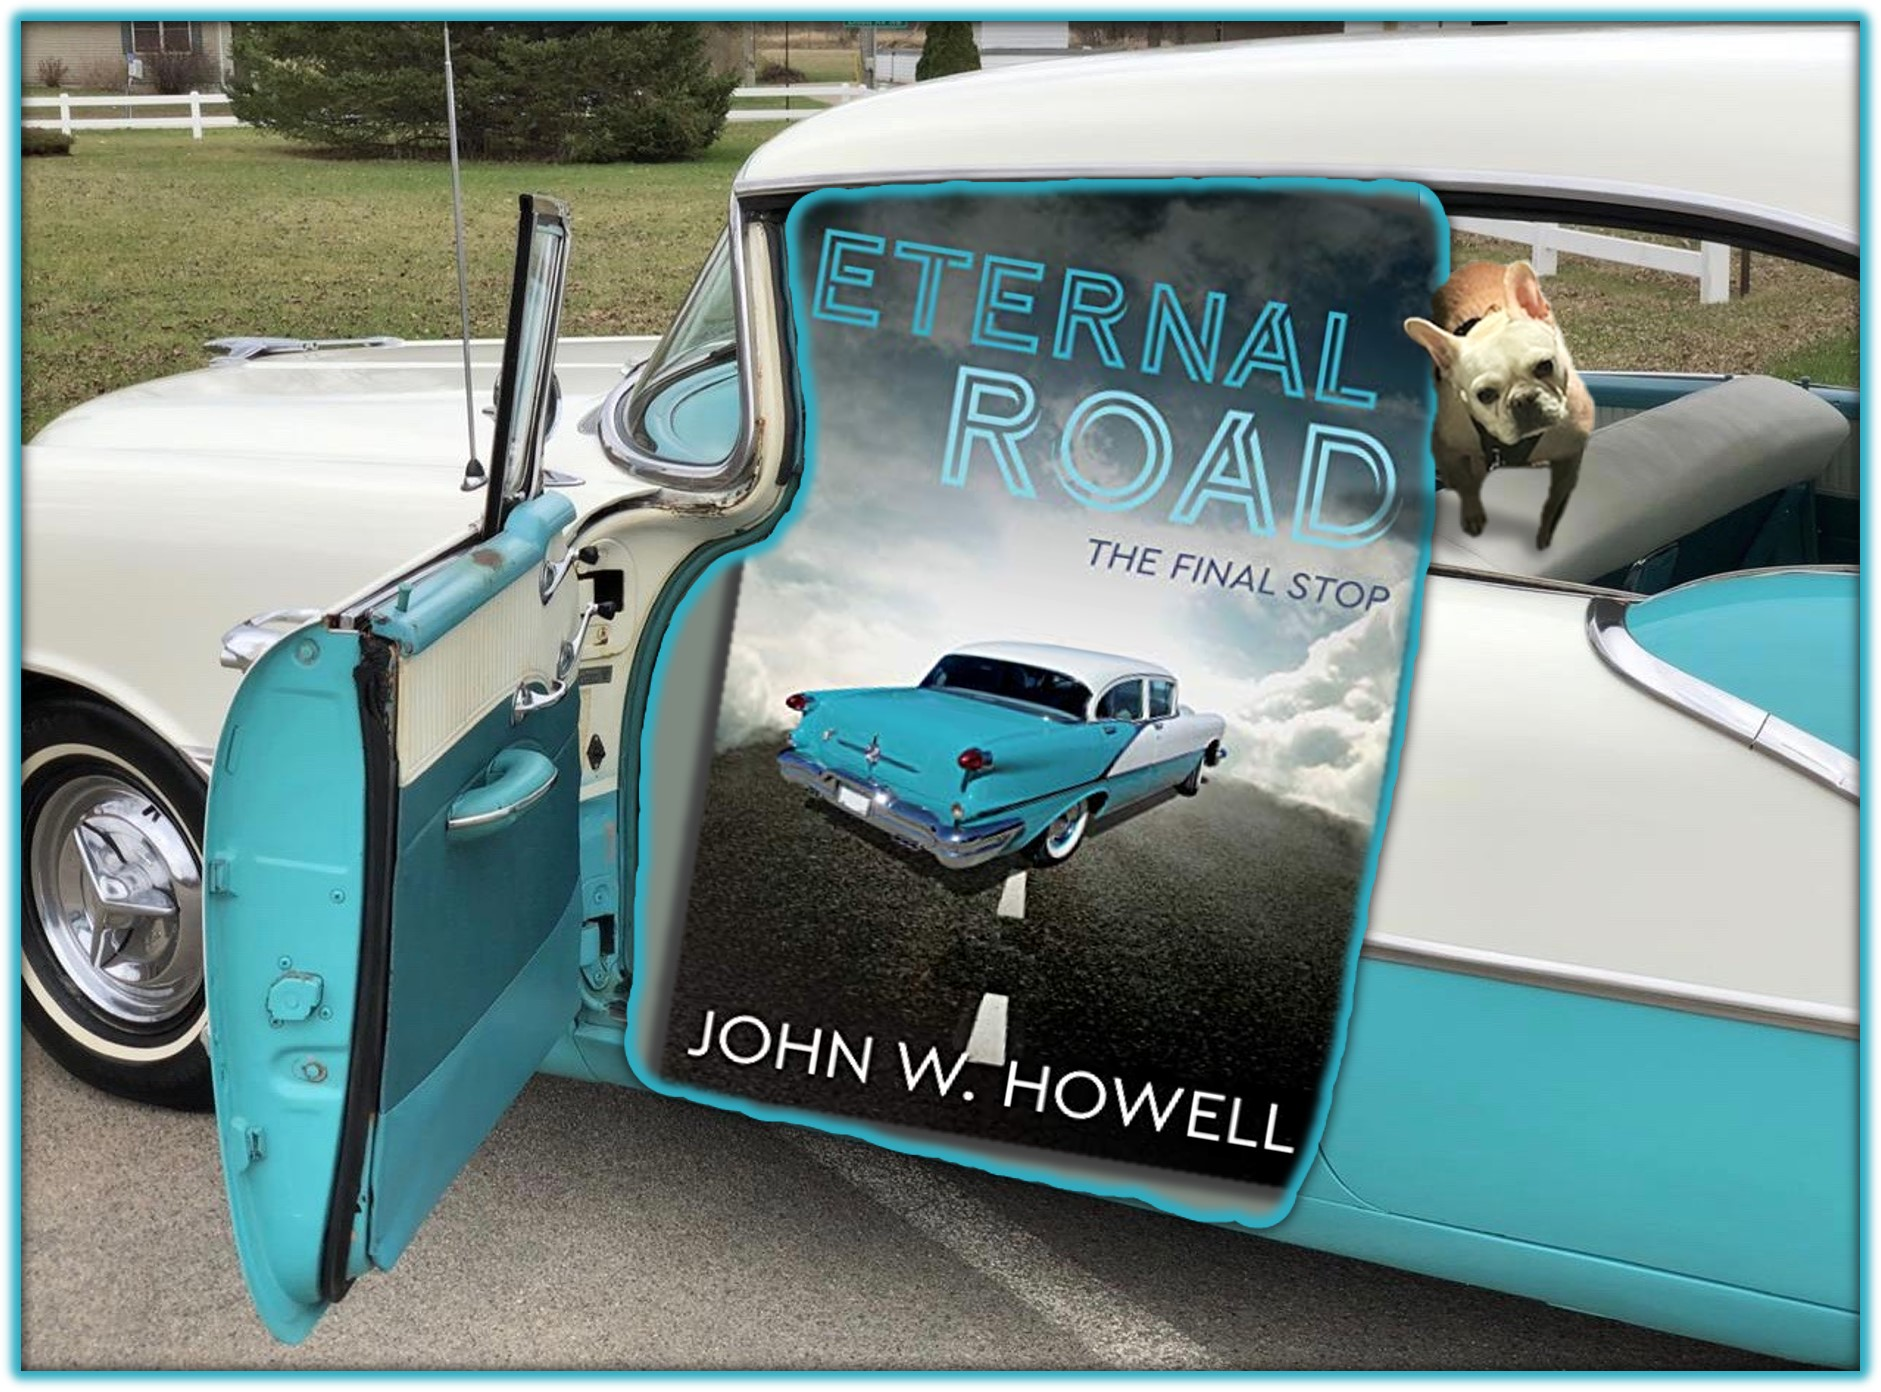 Eternal Road by John W. Howell. Door tomfoolery by Teagan